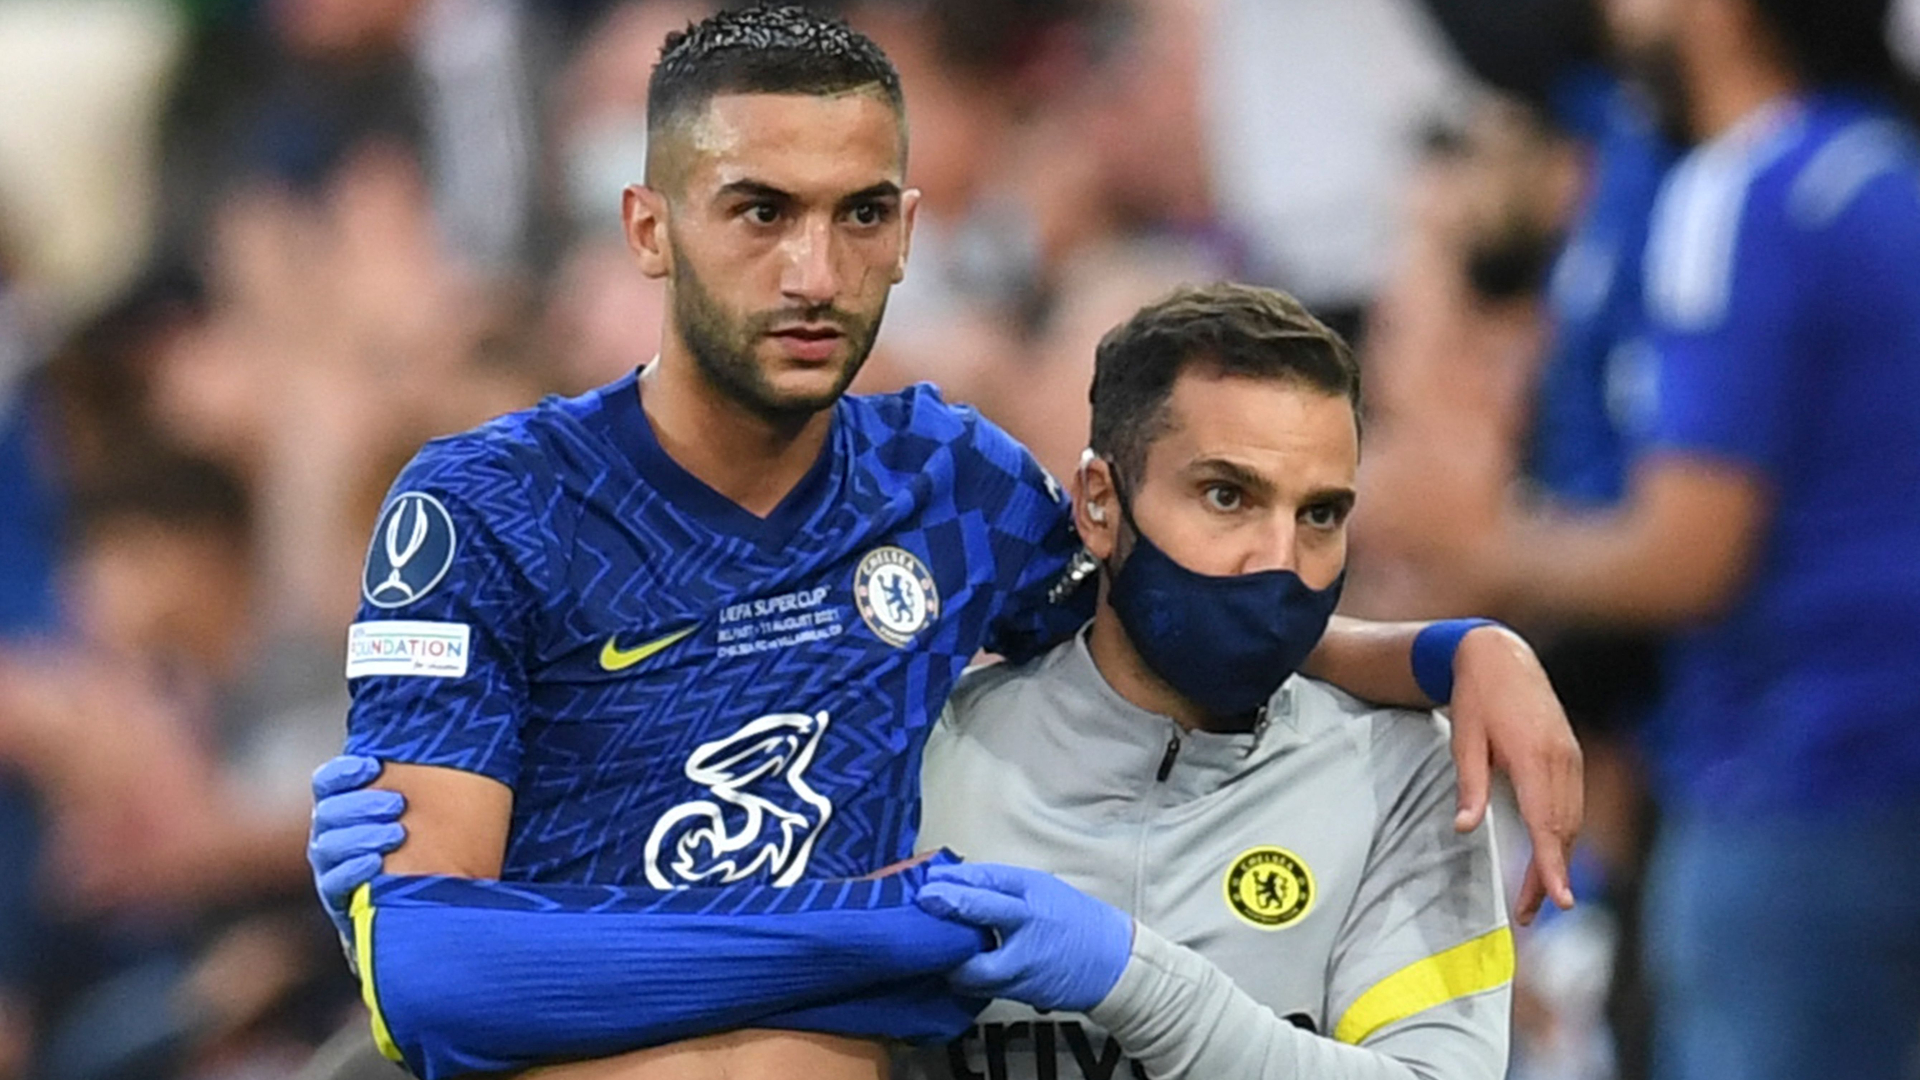 Chelsea star Ziyech subbed off due to injury after scoring against Villarreal in UEFA Super Cup